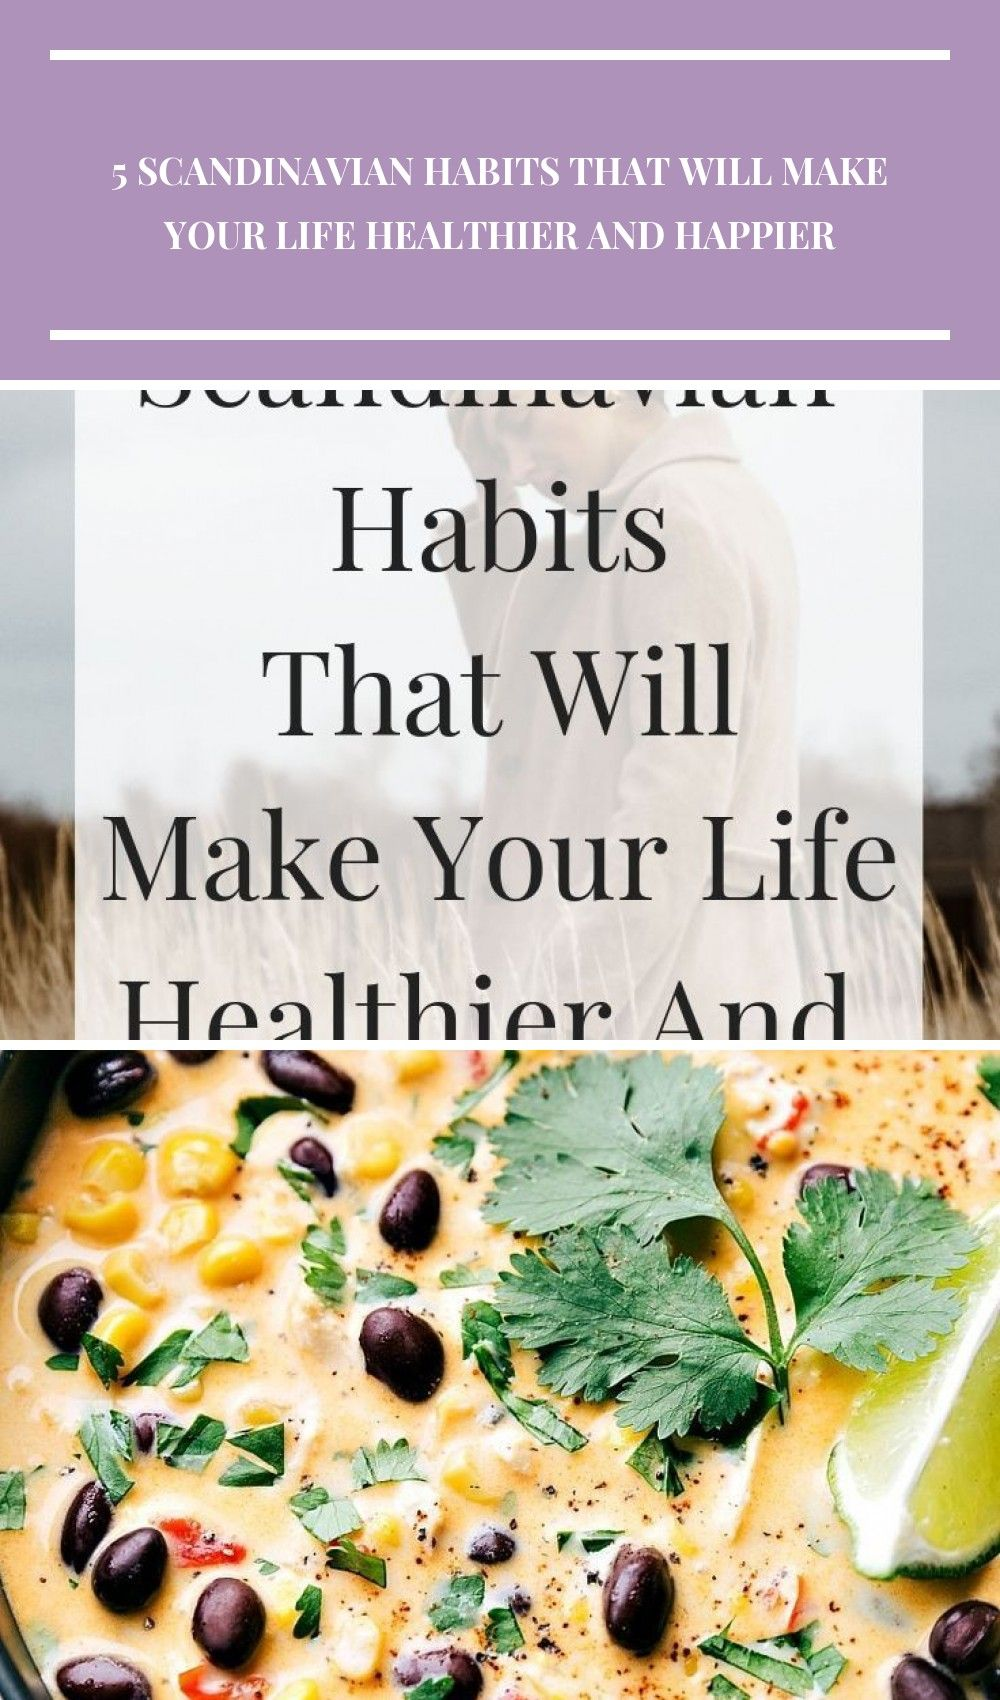 How to implement Scandinavian lifestyle into your daily routine following these 5 Scandinavian habits  Motivation  Personal Growth  Scandinavian lifestyle  Positivity  He...